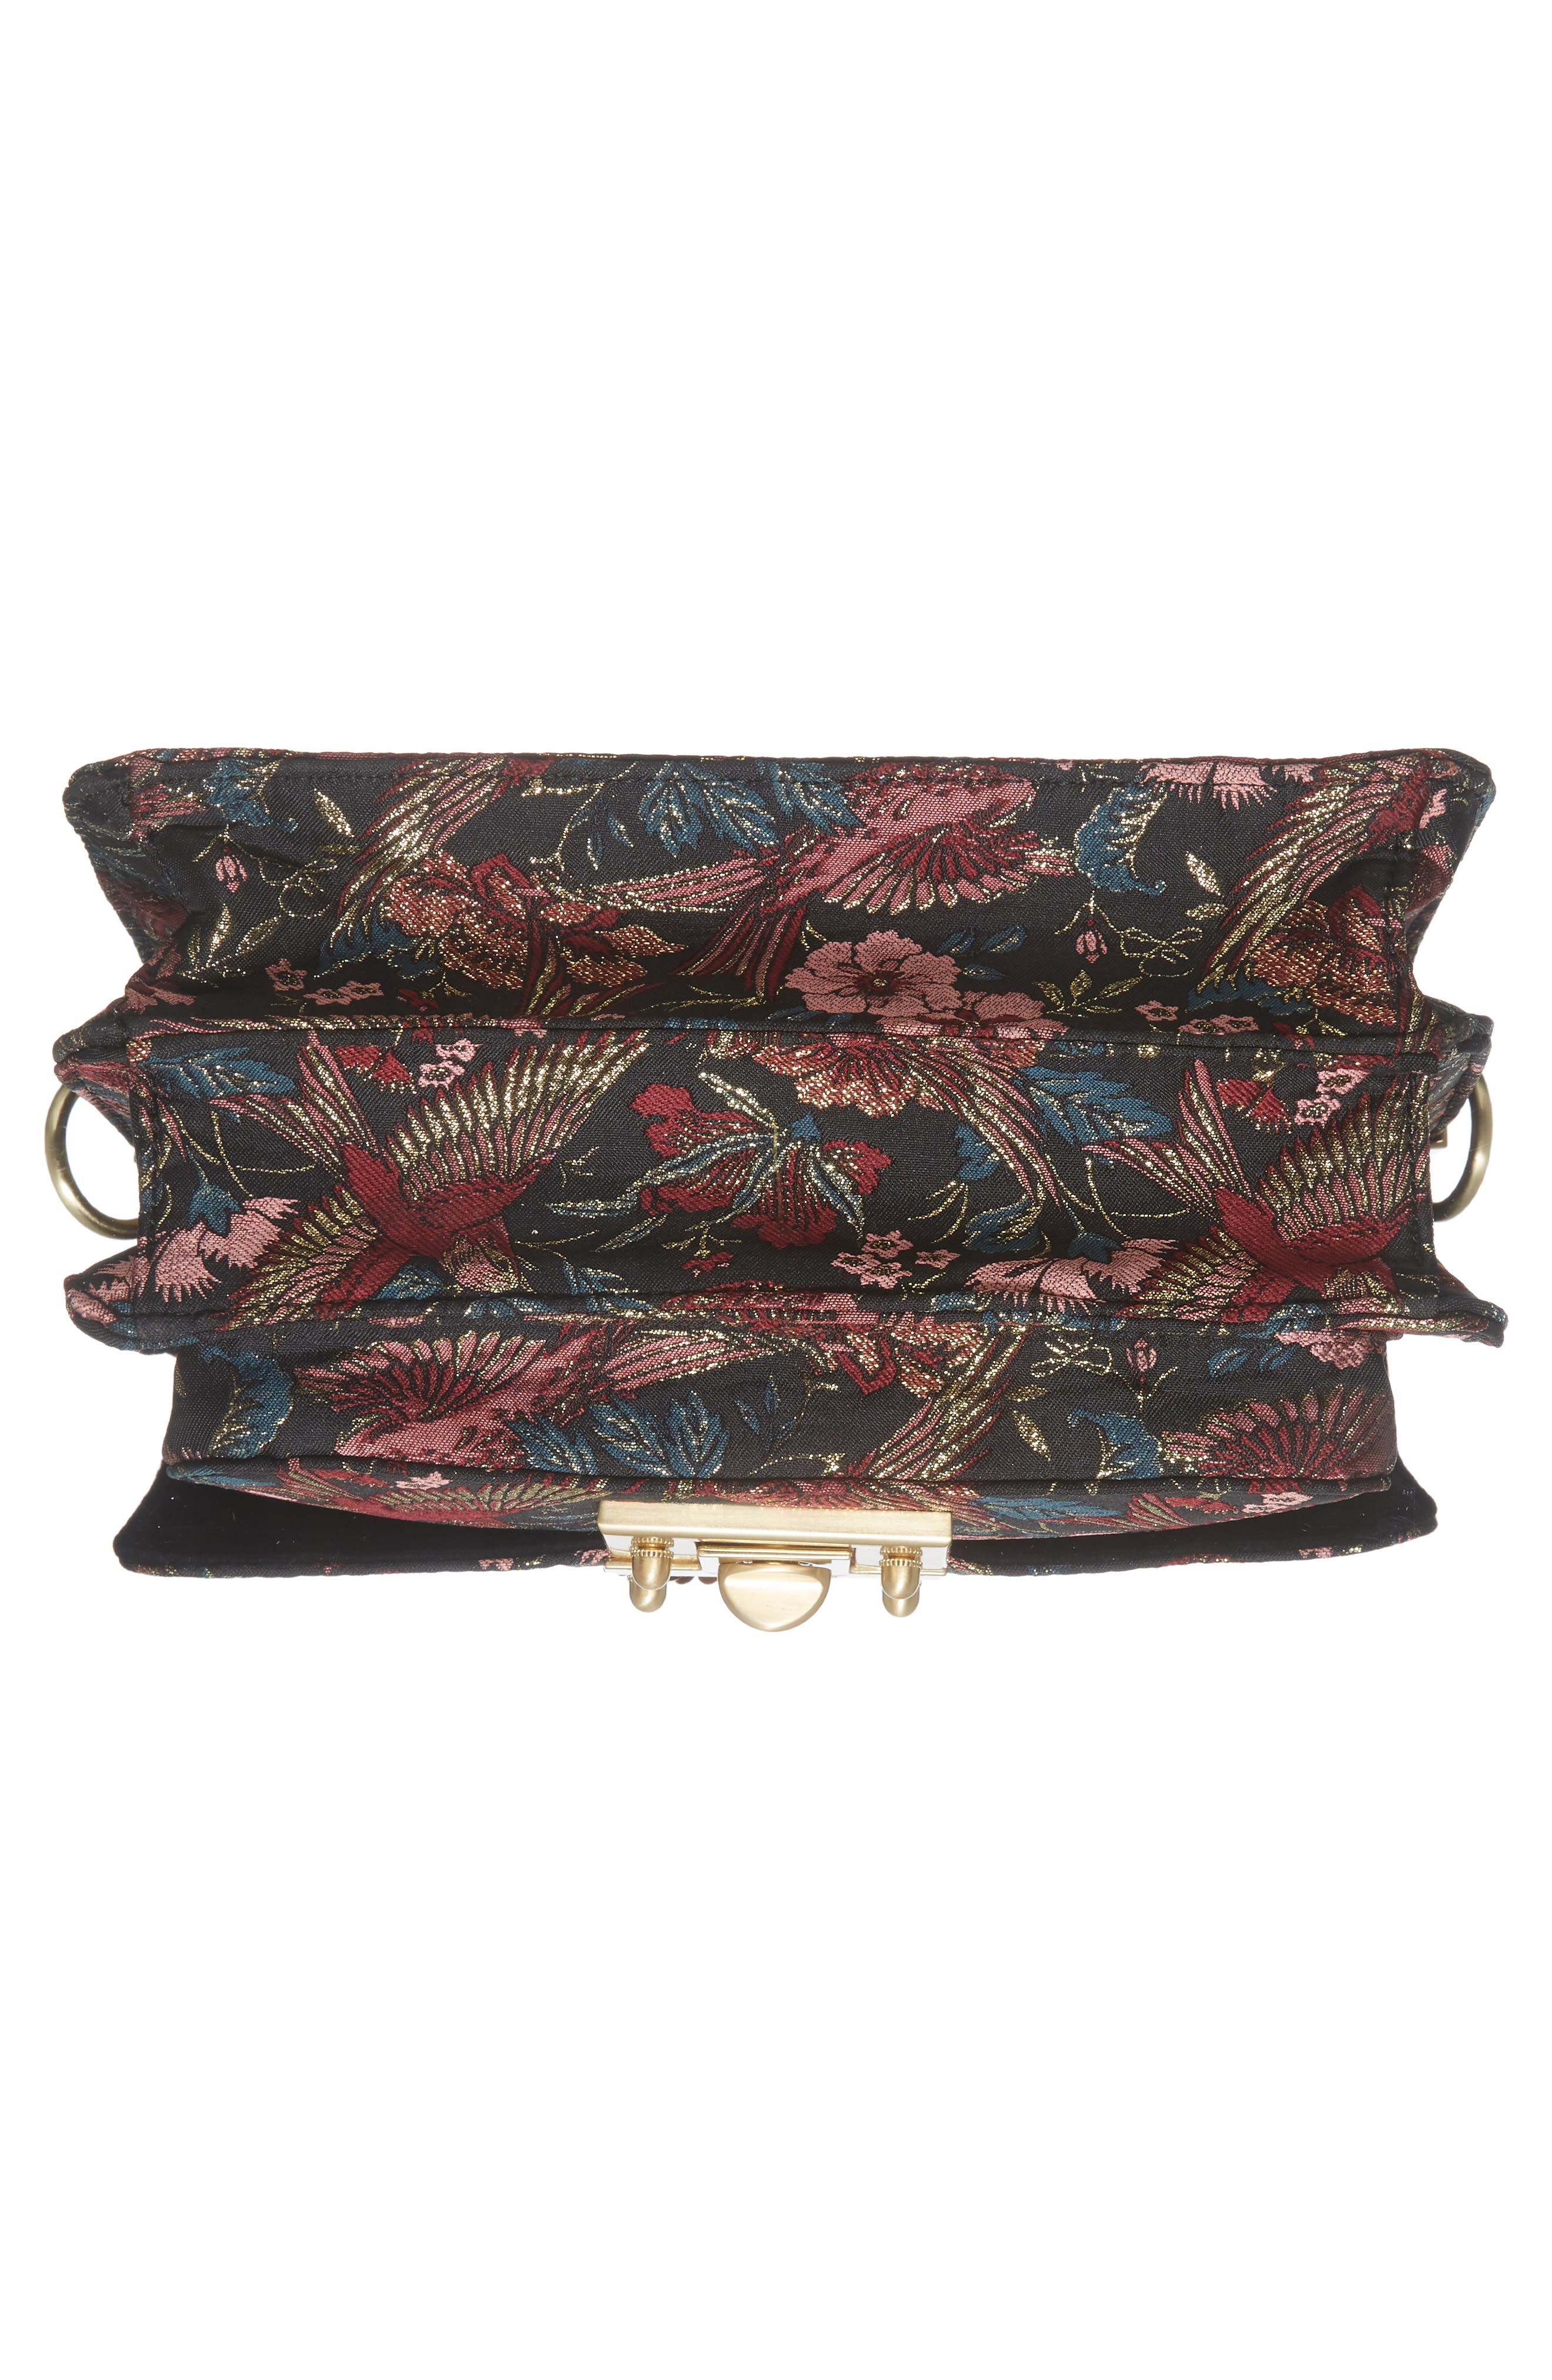 Gessica Jacquard Shoulder Bag,                             Alternate thumbnail 5, color,                             Majestic Bird